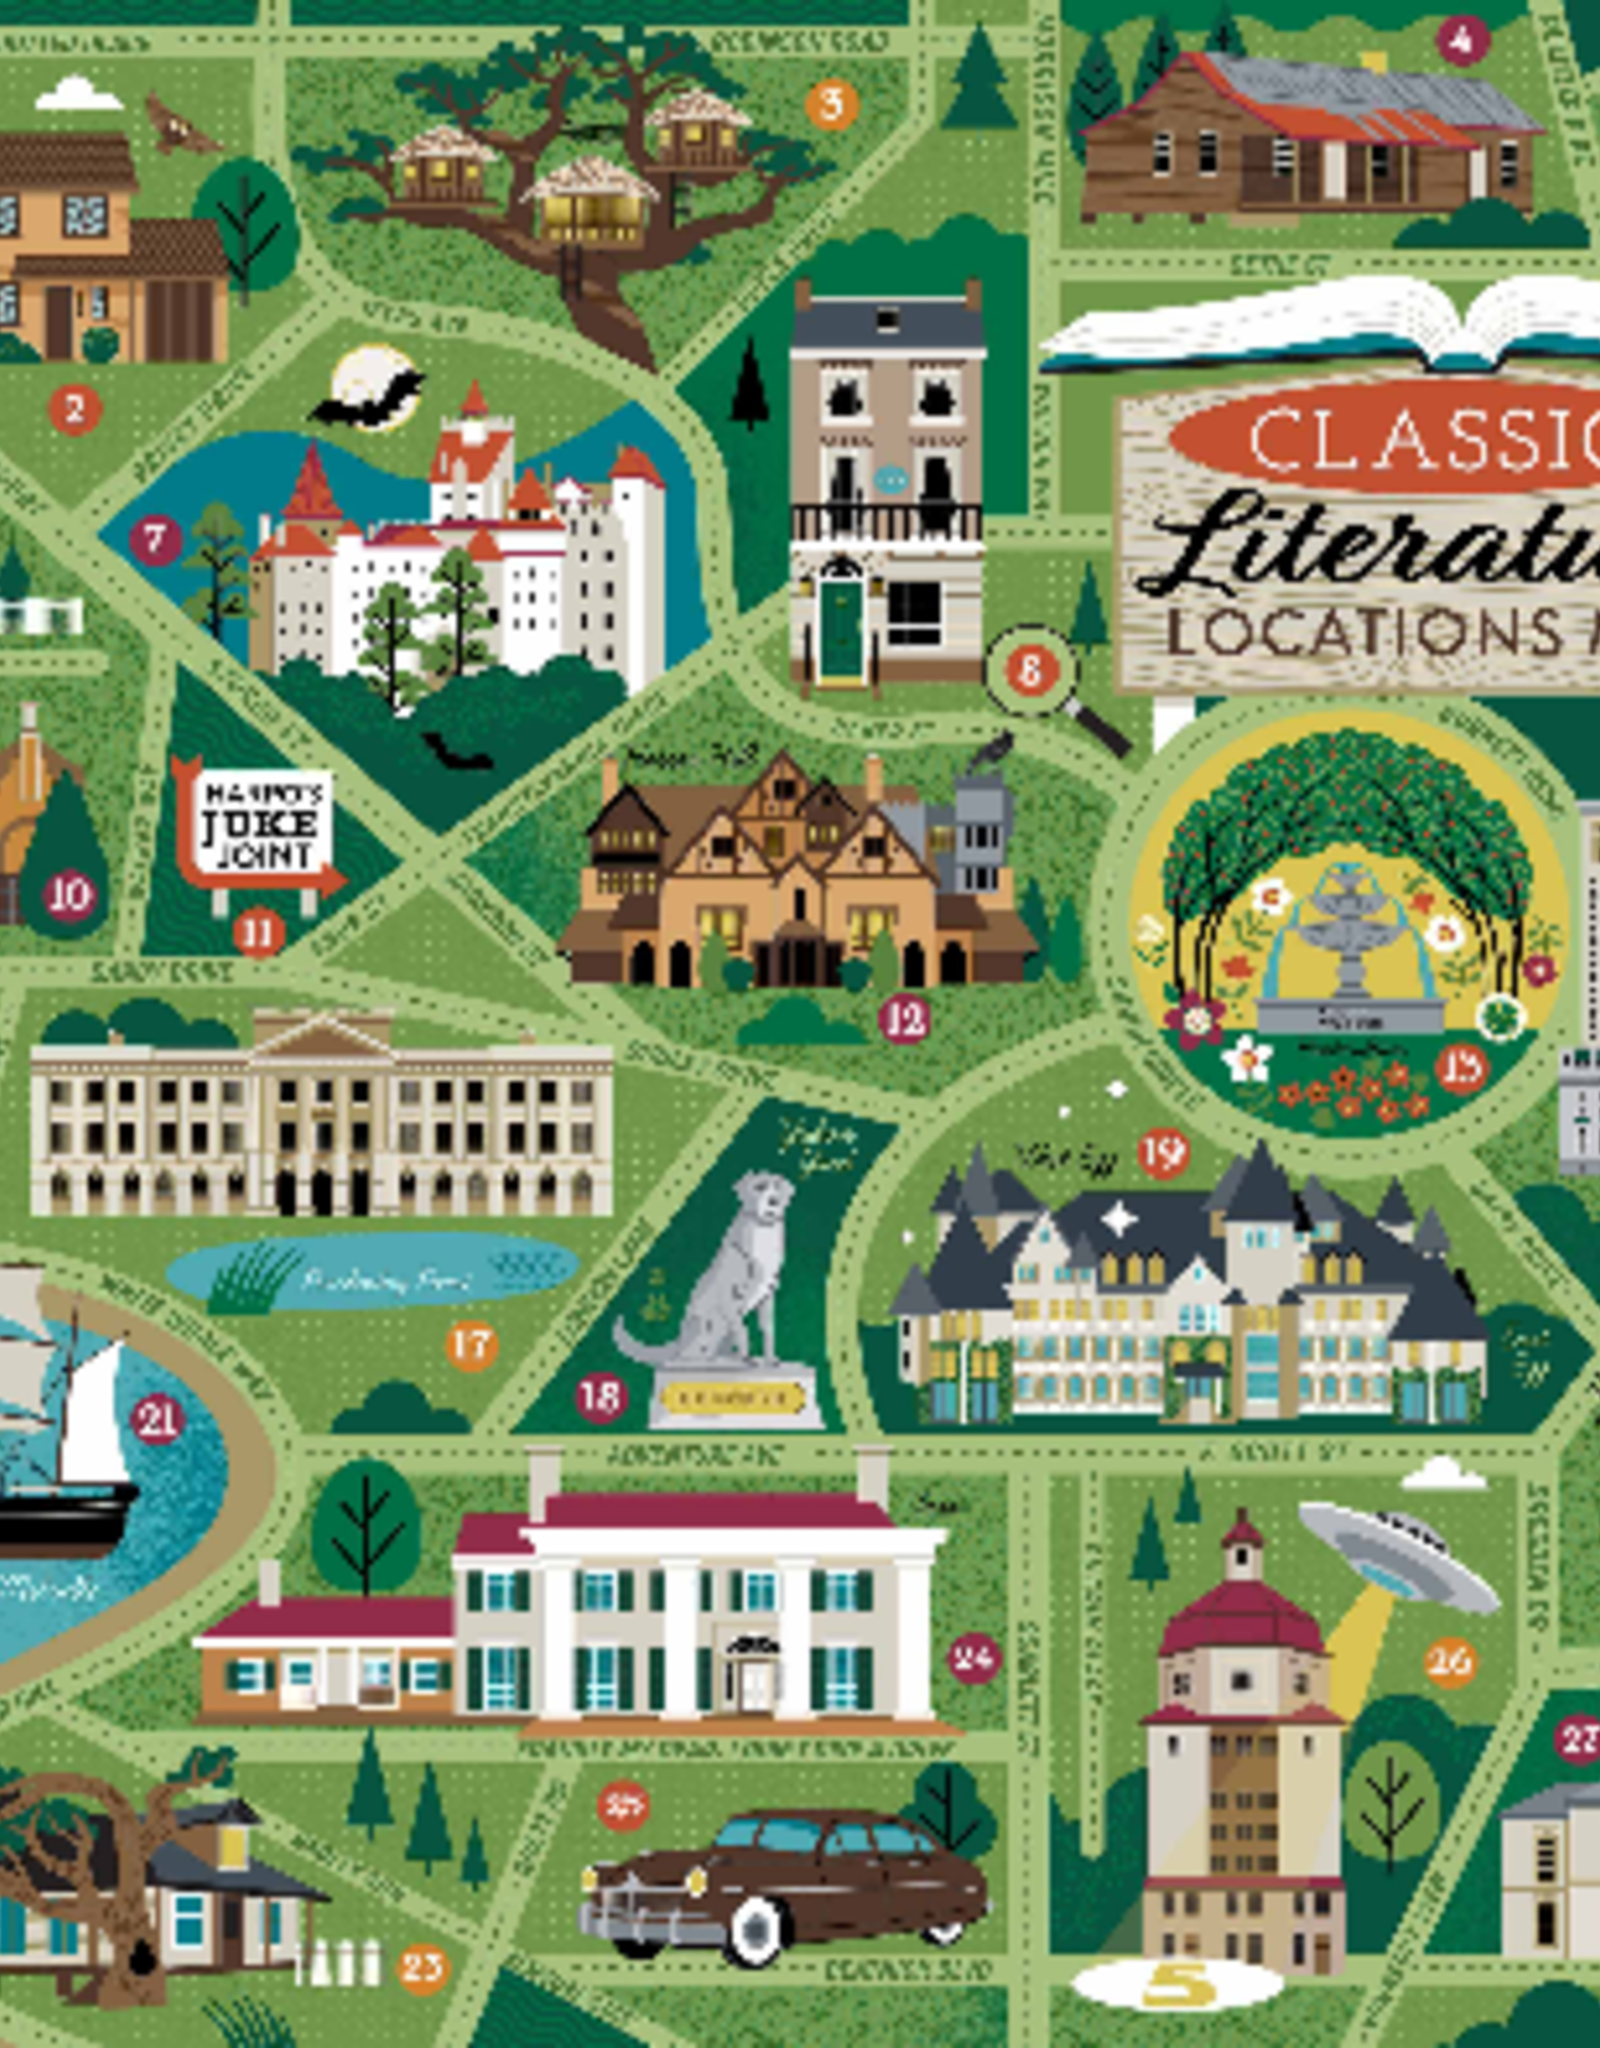 True South Puzzle True South Puzzle Classic Literary Locations